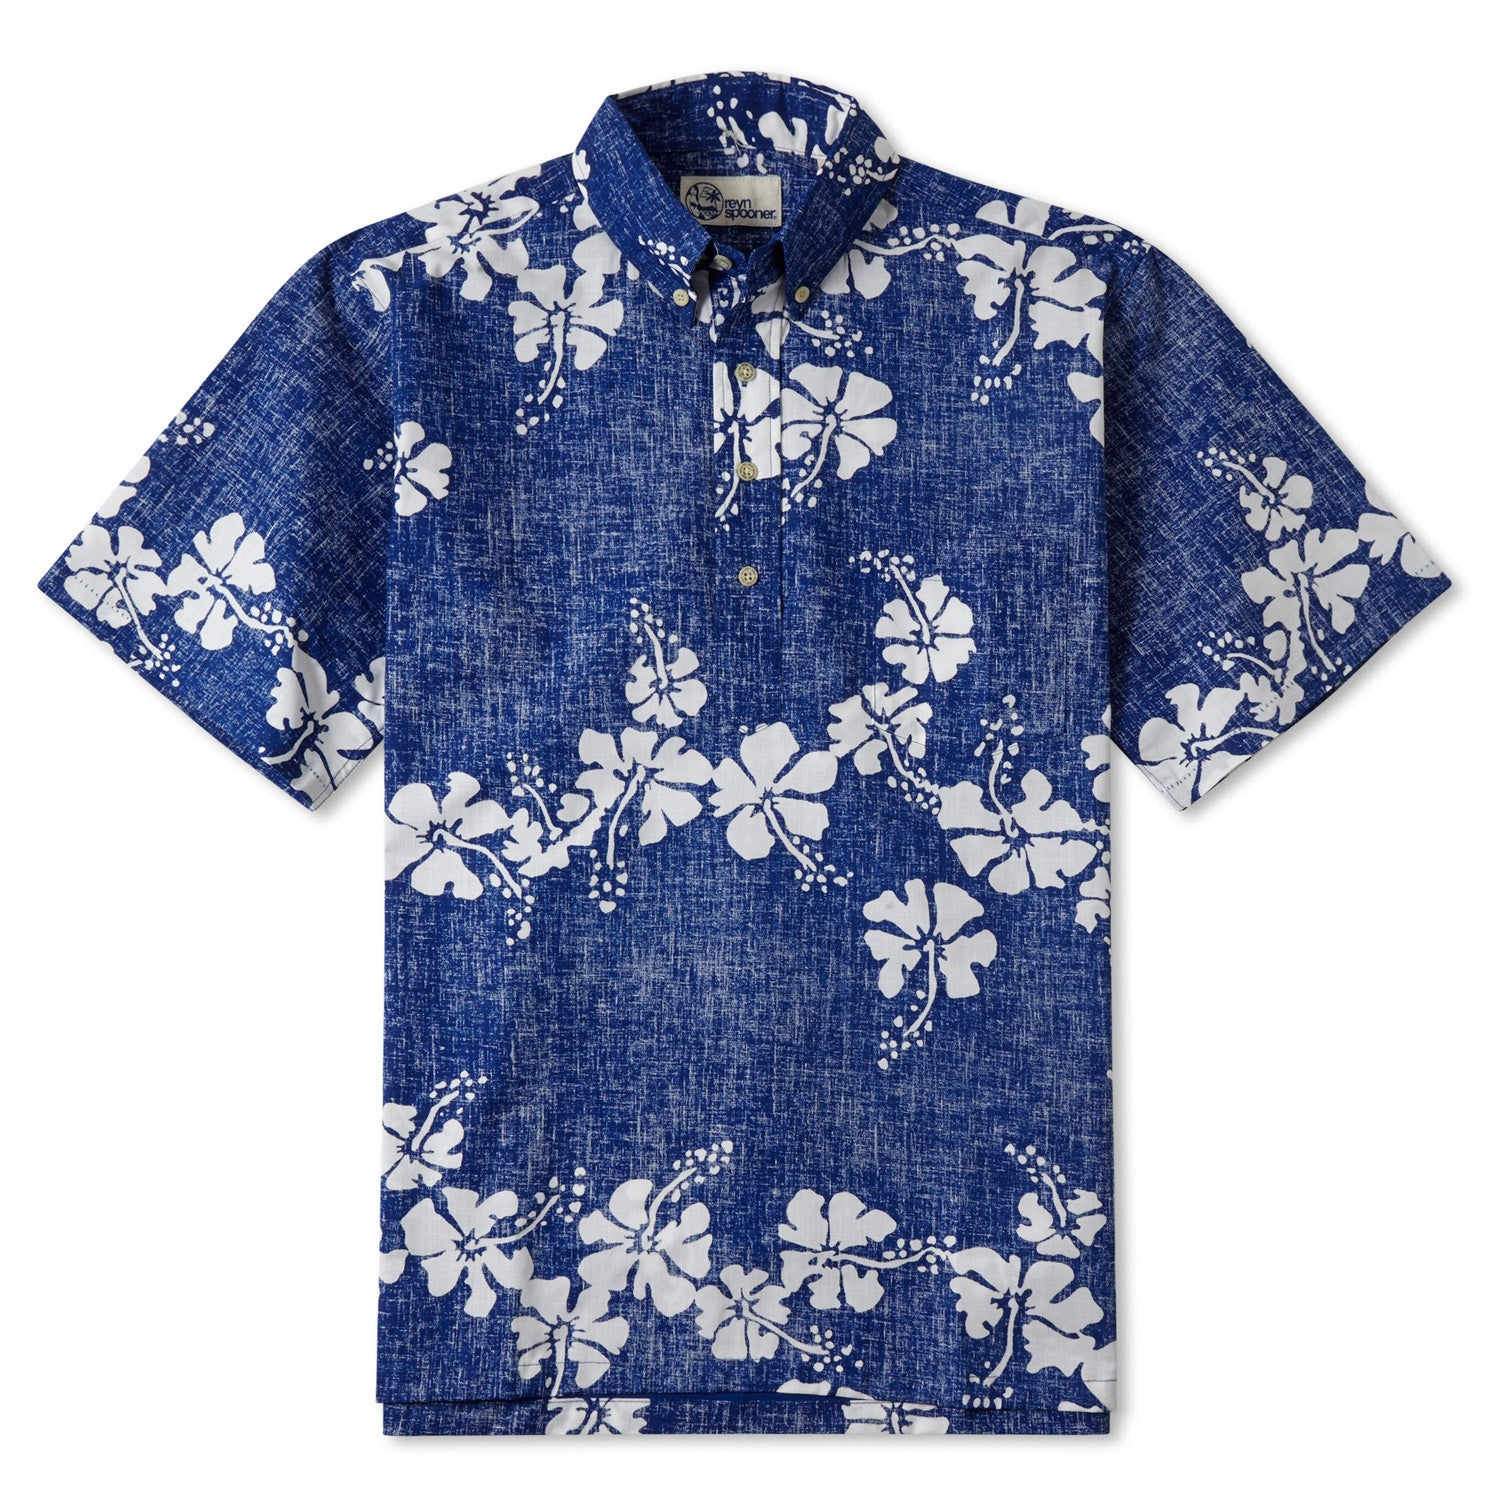 50Th State Flower Classic Fit Short Sleeve Pullover Shirt, Cotton/Polyester, For Men, 2XL, Blue, From Reyn Spooner